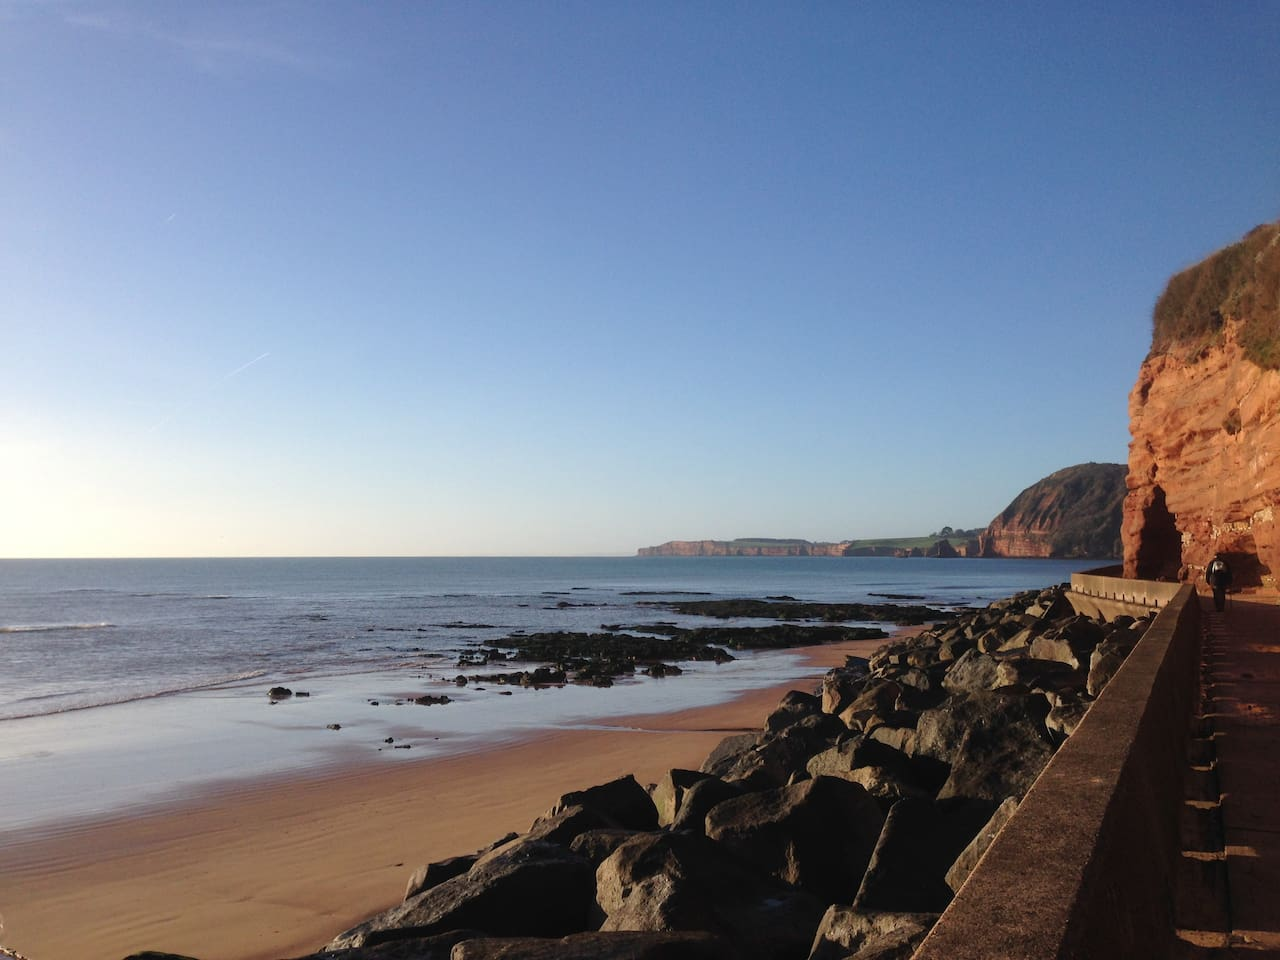 Little Anchor is just a couple of minutes walk away from all of this - Sidmouth Esplanade and Beach